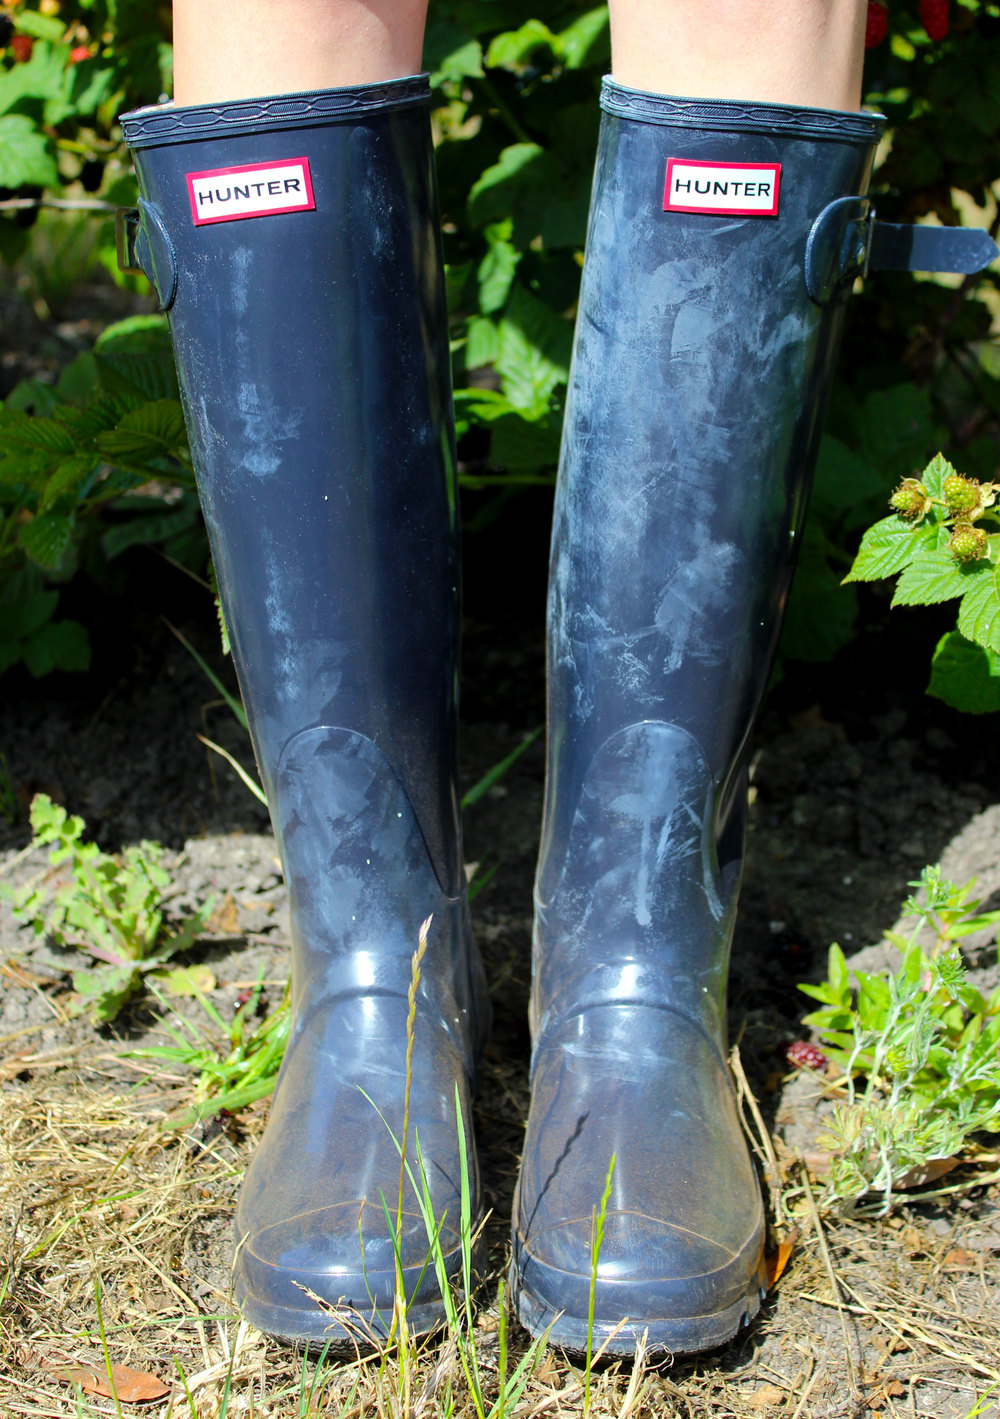 Summertime in Northern California - picking berries and wearing navy blue Hunter boots | Sundays and Somedays